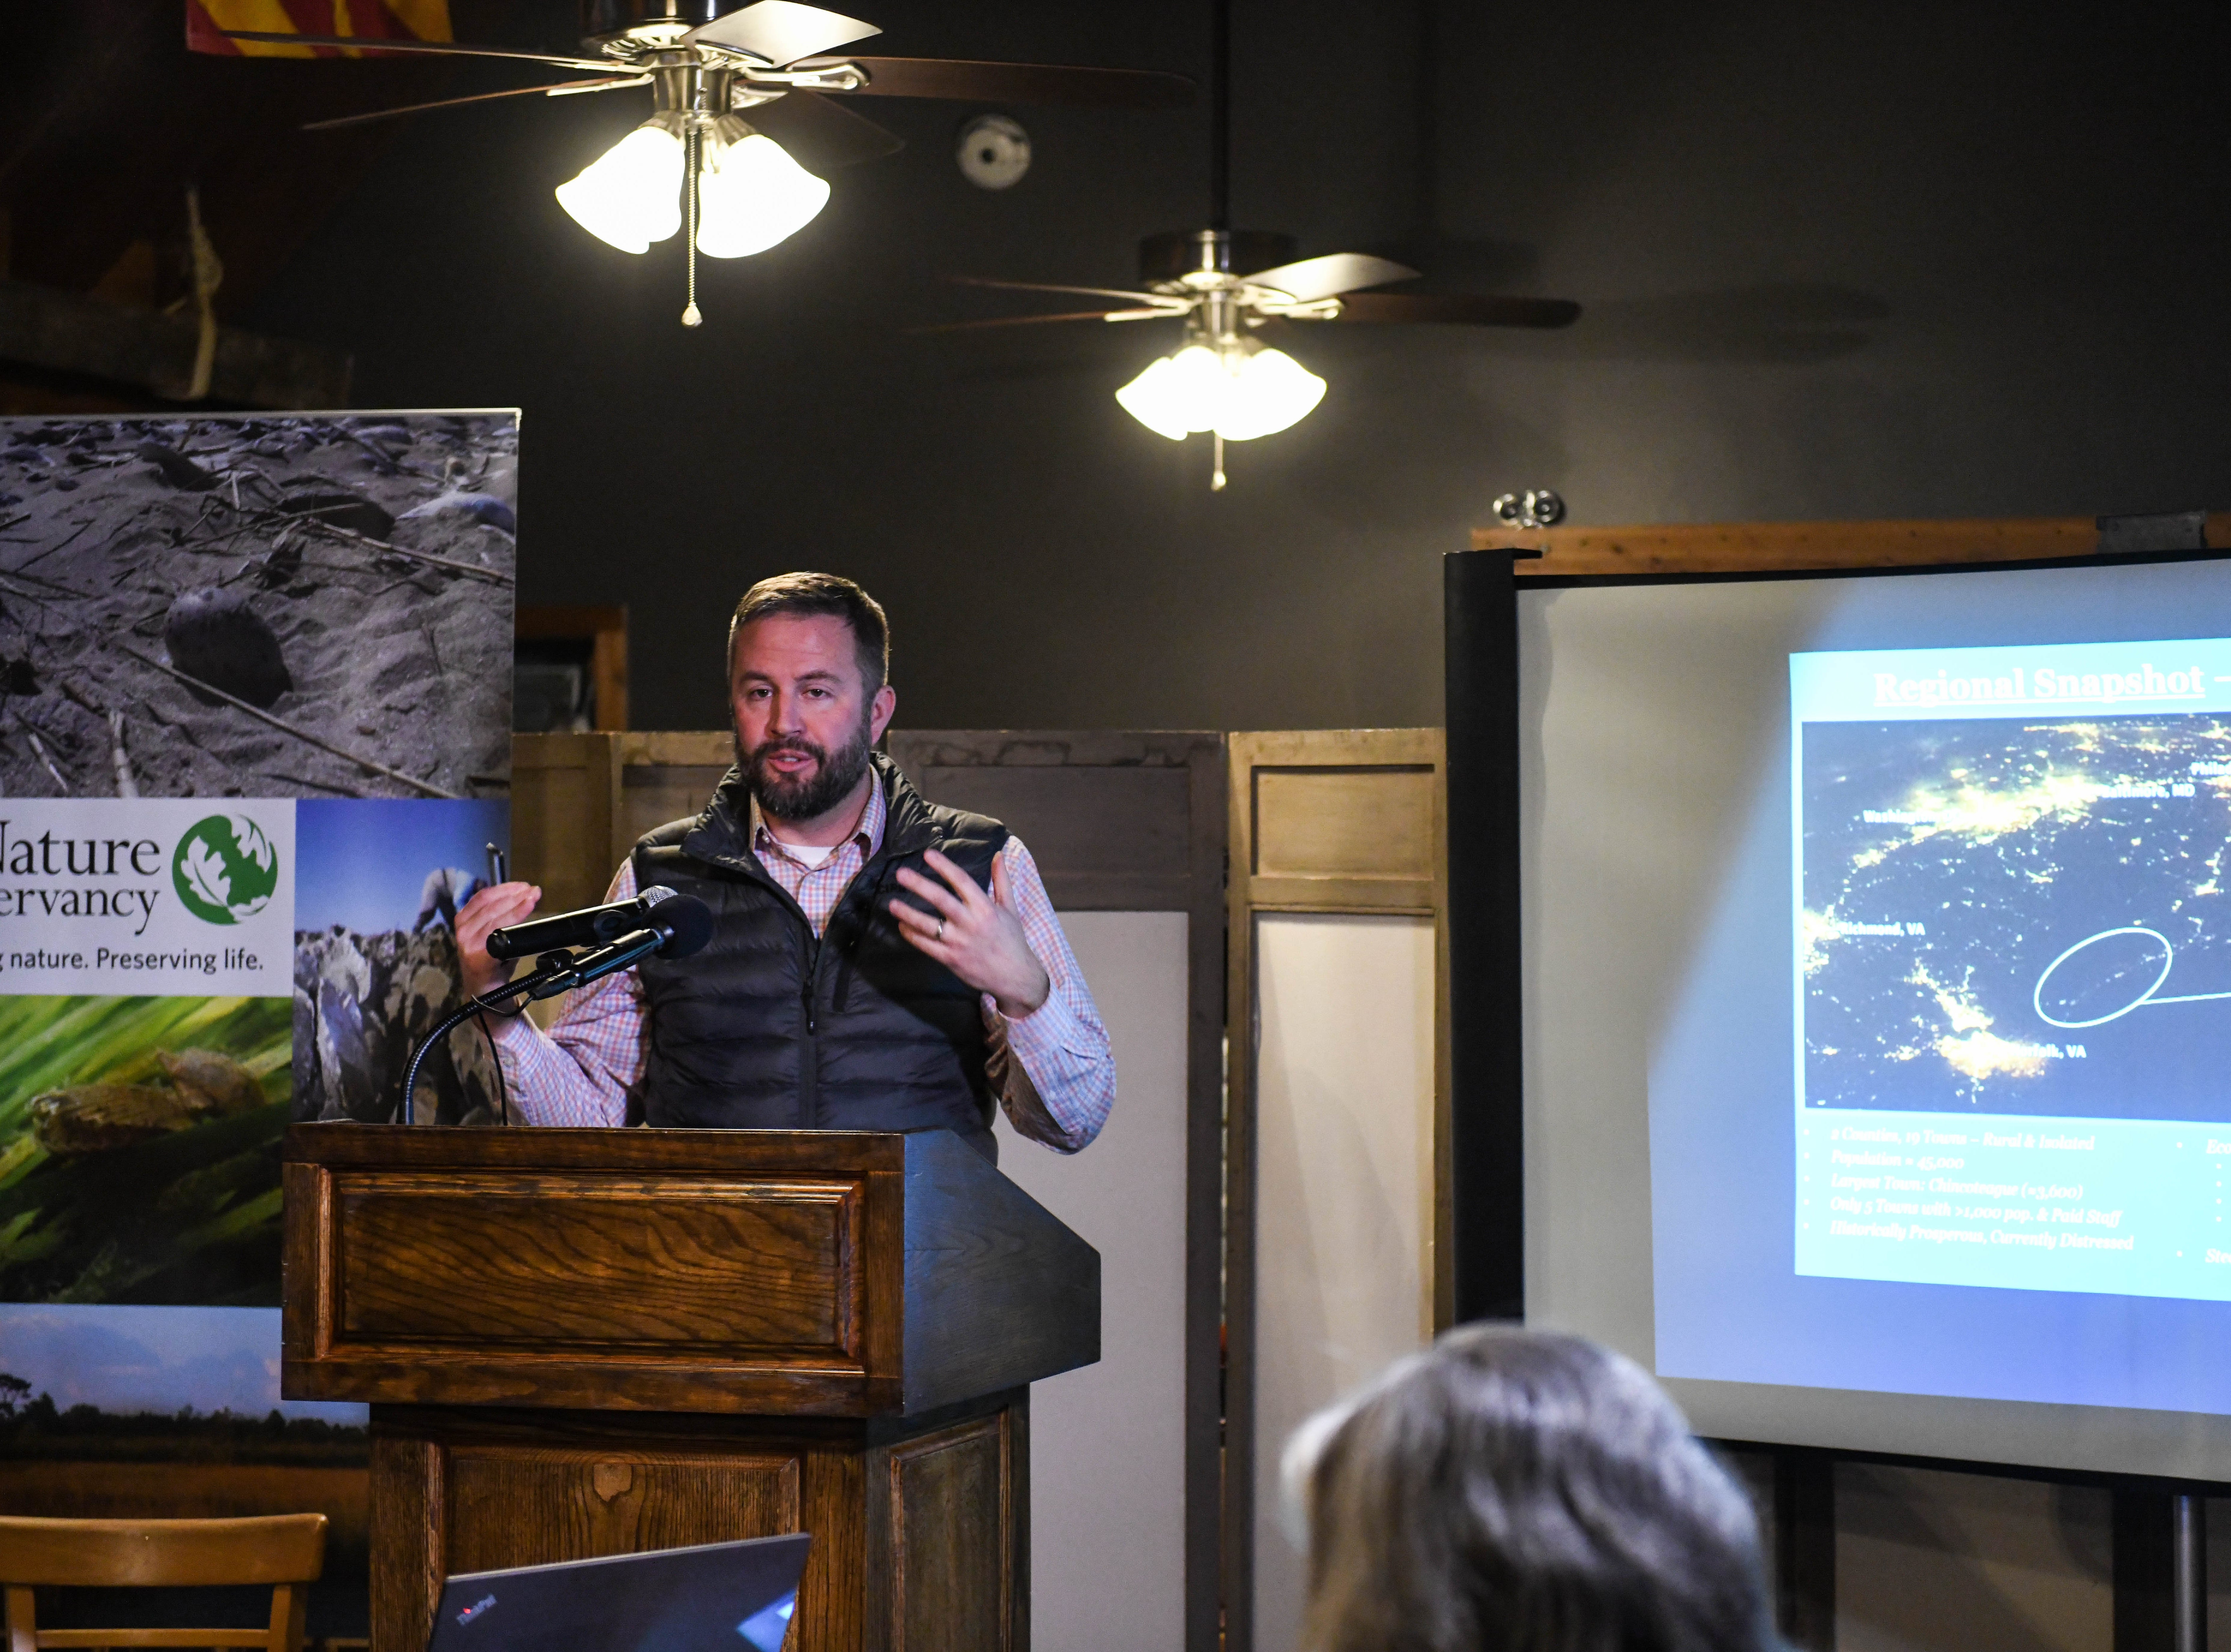 Curtis Smith, director of planning for the Accomack- Northampton Planning District Commission, presents about sea level rise at a community meeting in Wachapreague, Virginia on Monday, March 4, 2019.